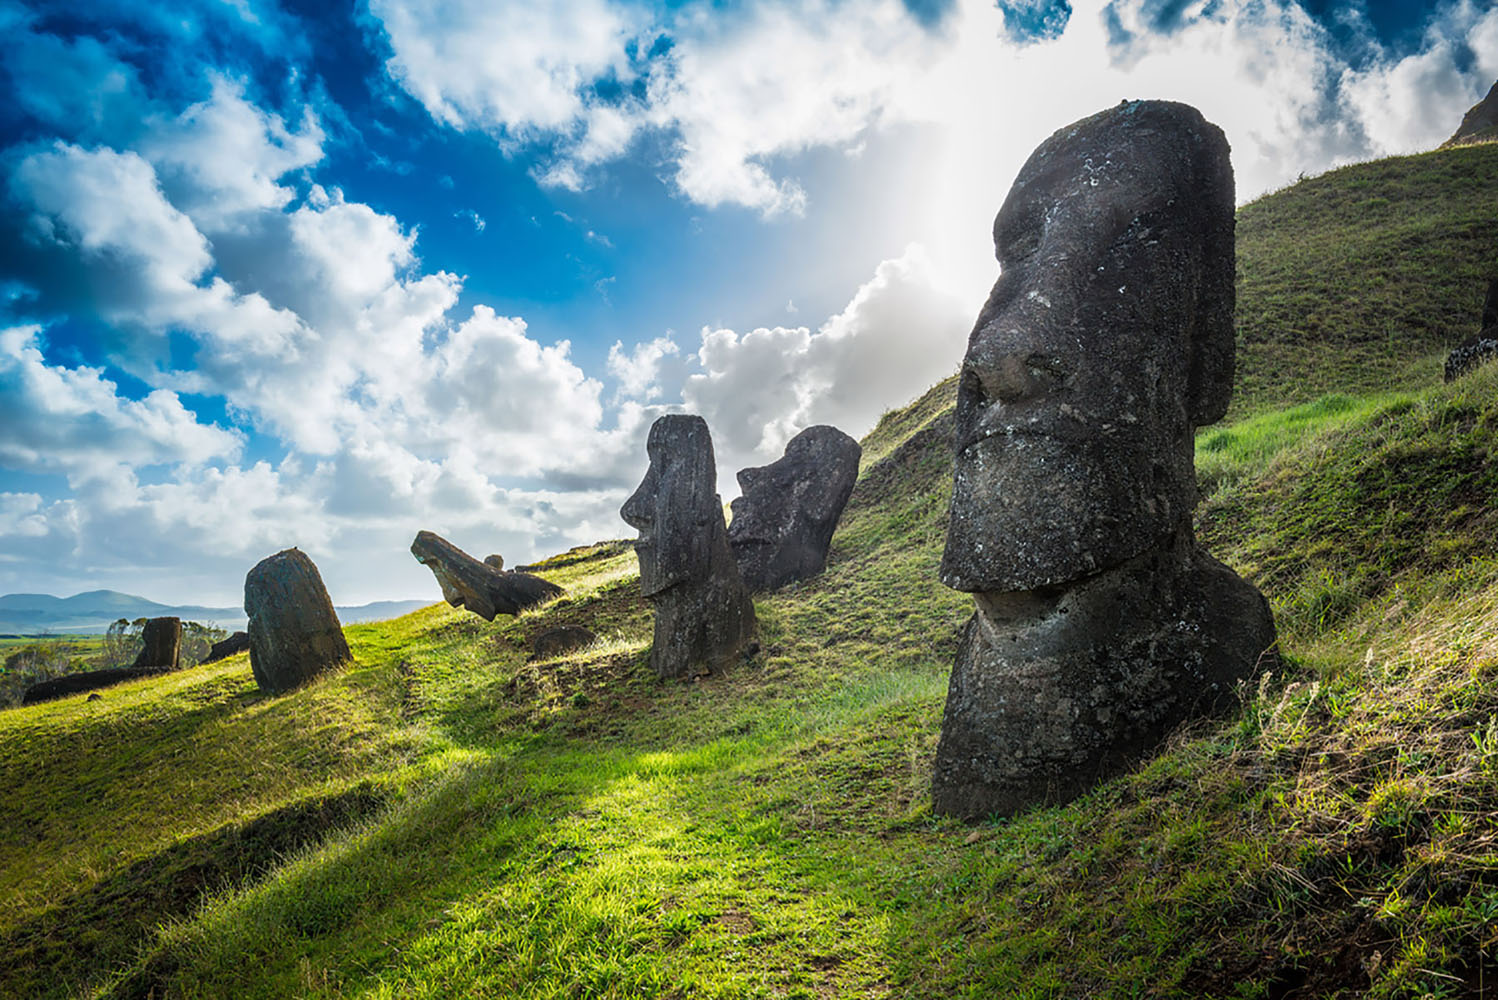 The statues on Easter Island.